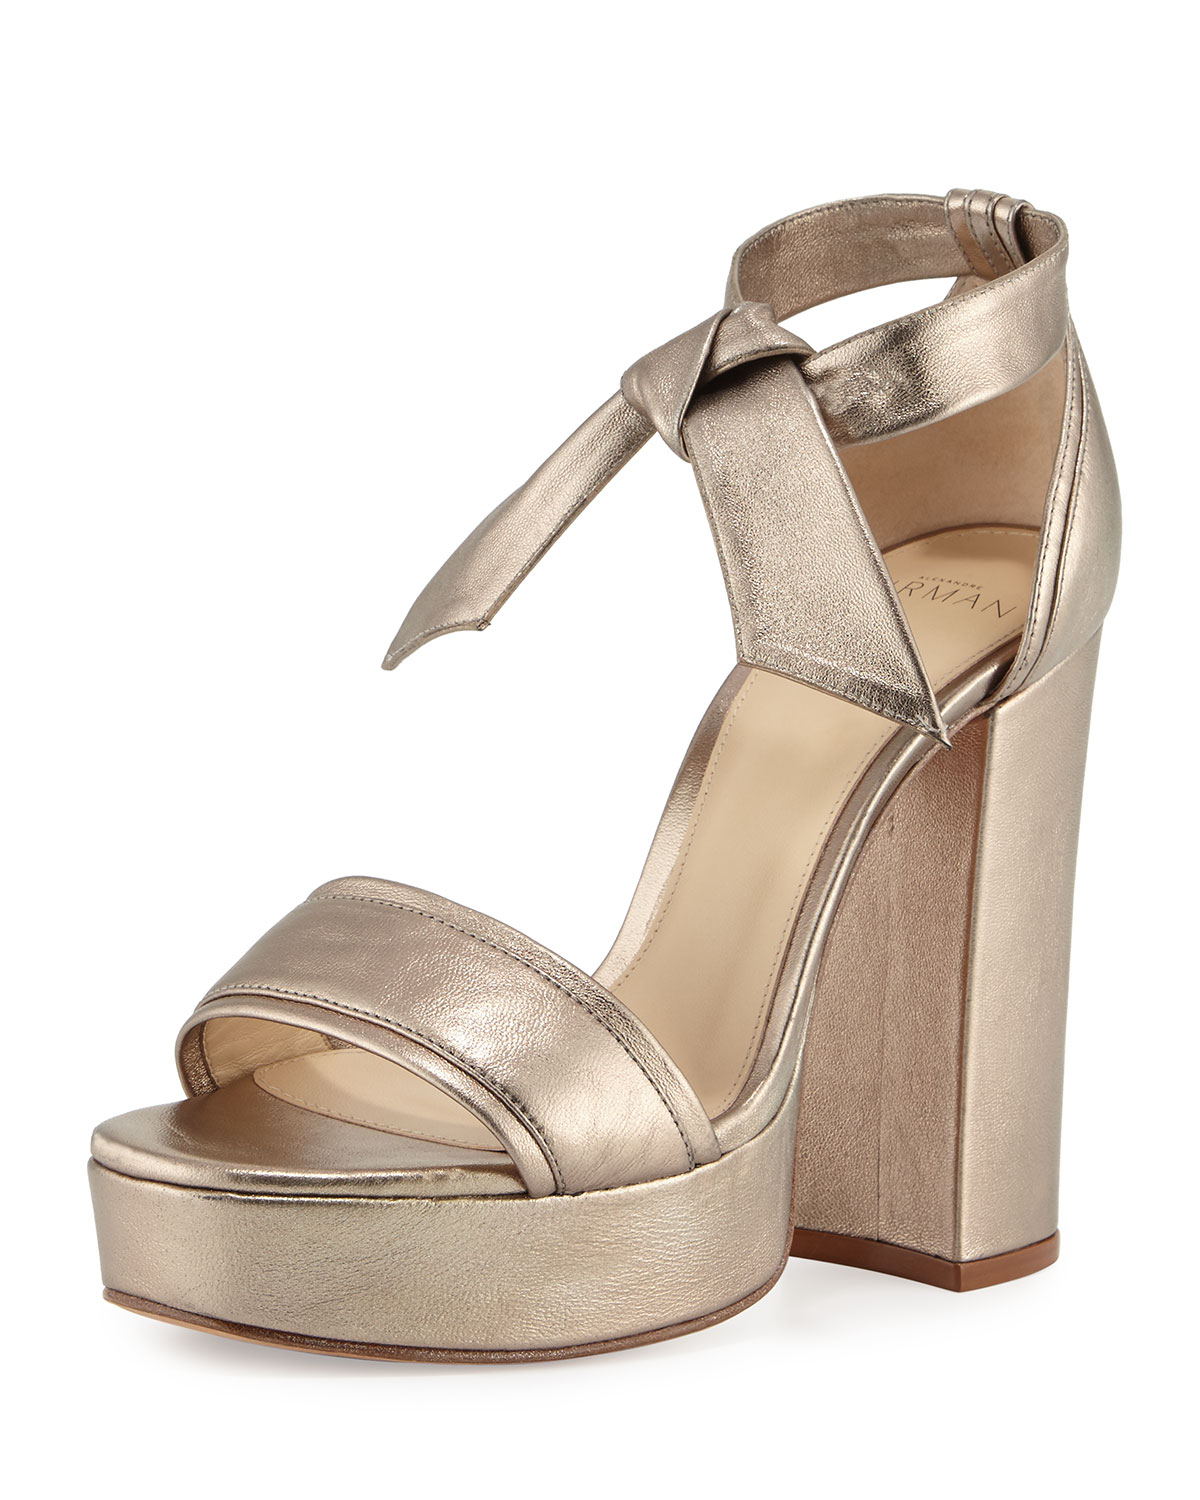 c96a75ad207 Alexandre Birman Celine Platform Metallic Leather Sandals